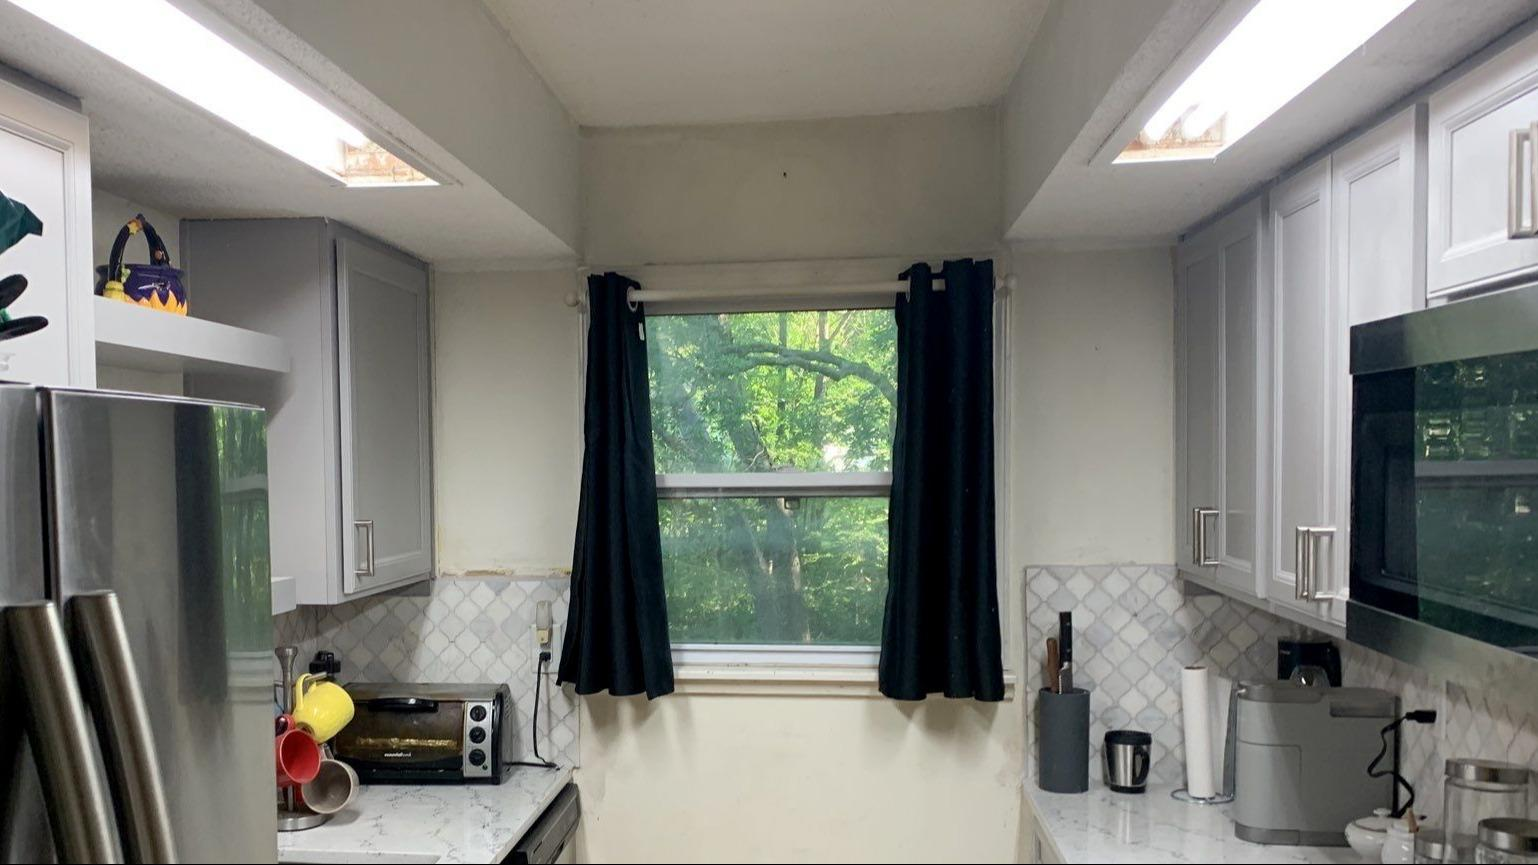 Granite Countertops and Backsplash Put in a Kitchen in Kansas City, MO - After Photo